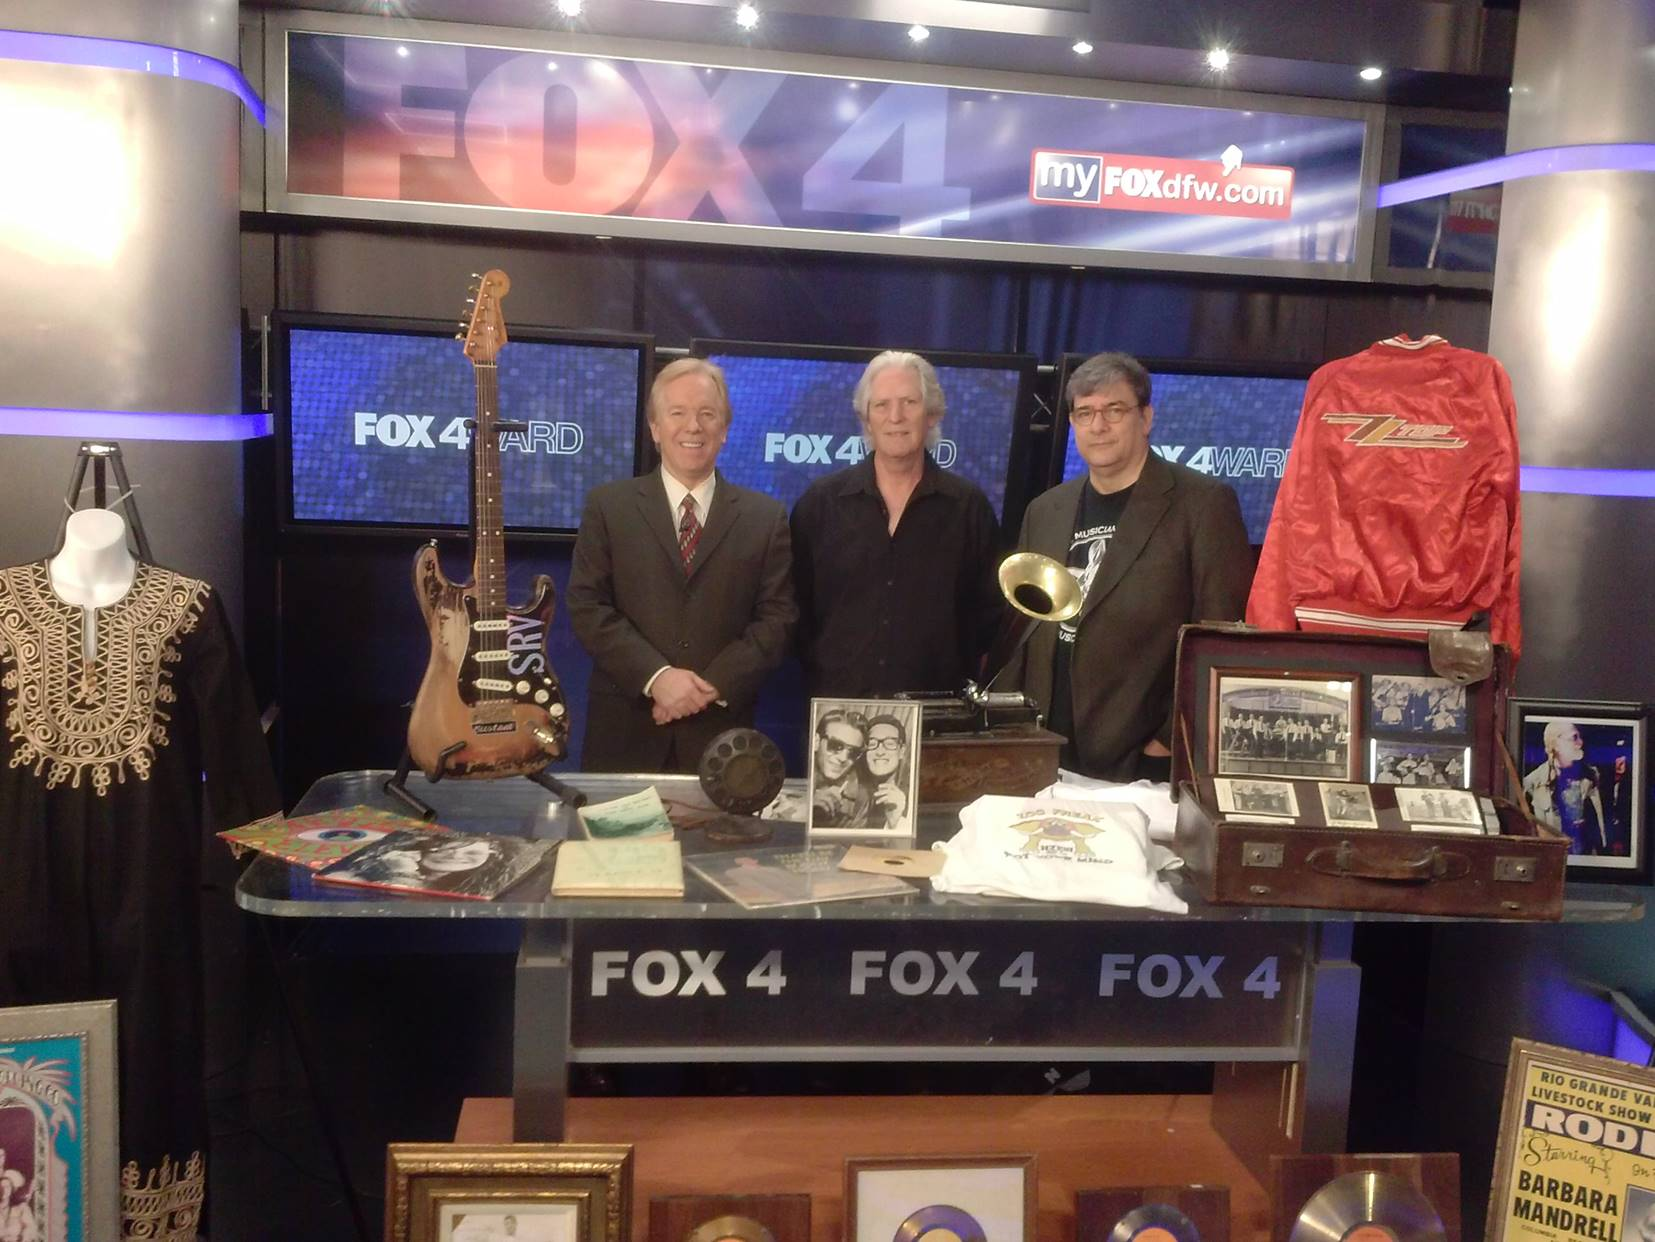 Our very own Director/Founder, Thomas Kreason on the 9 PM Fox4 News with Dan Godwin